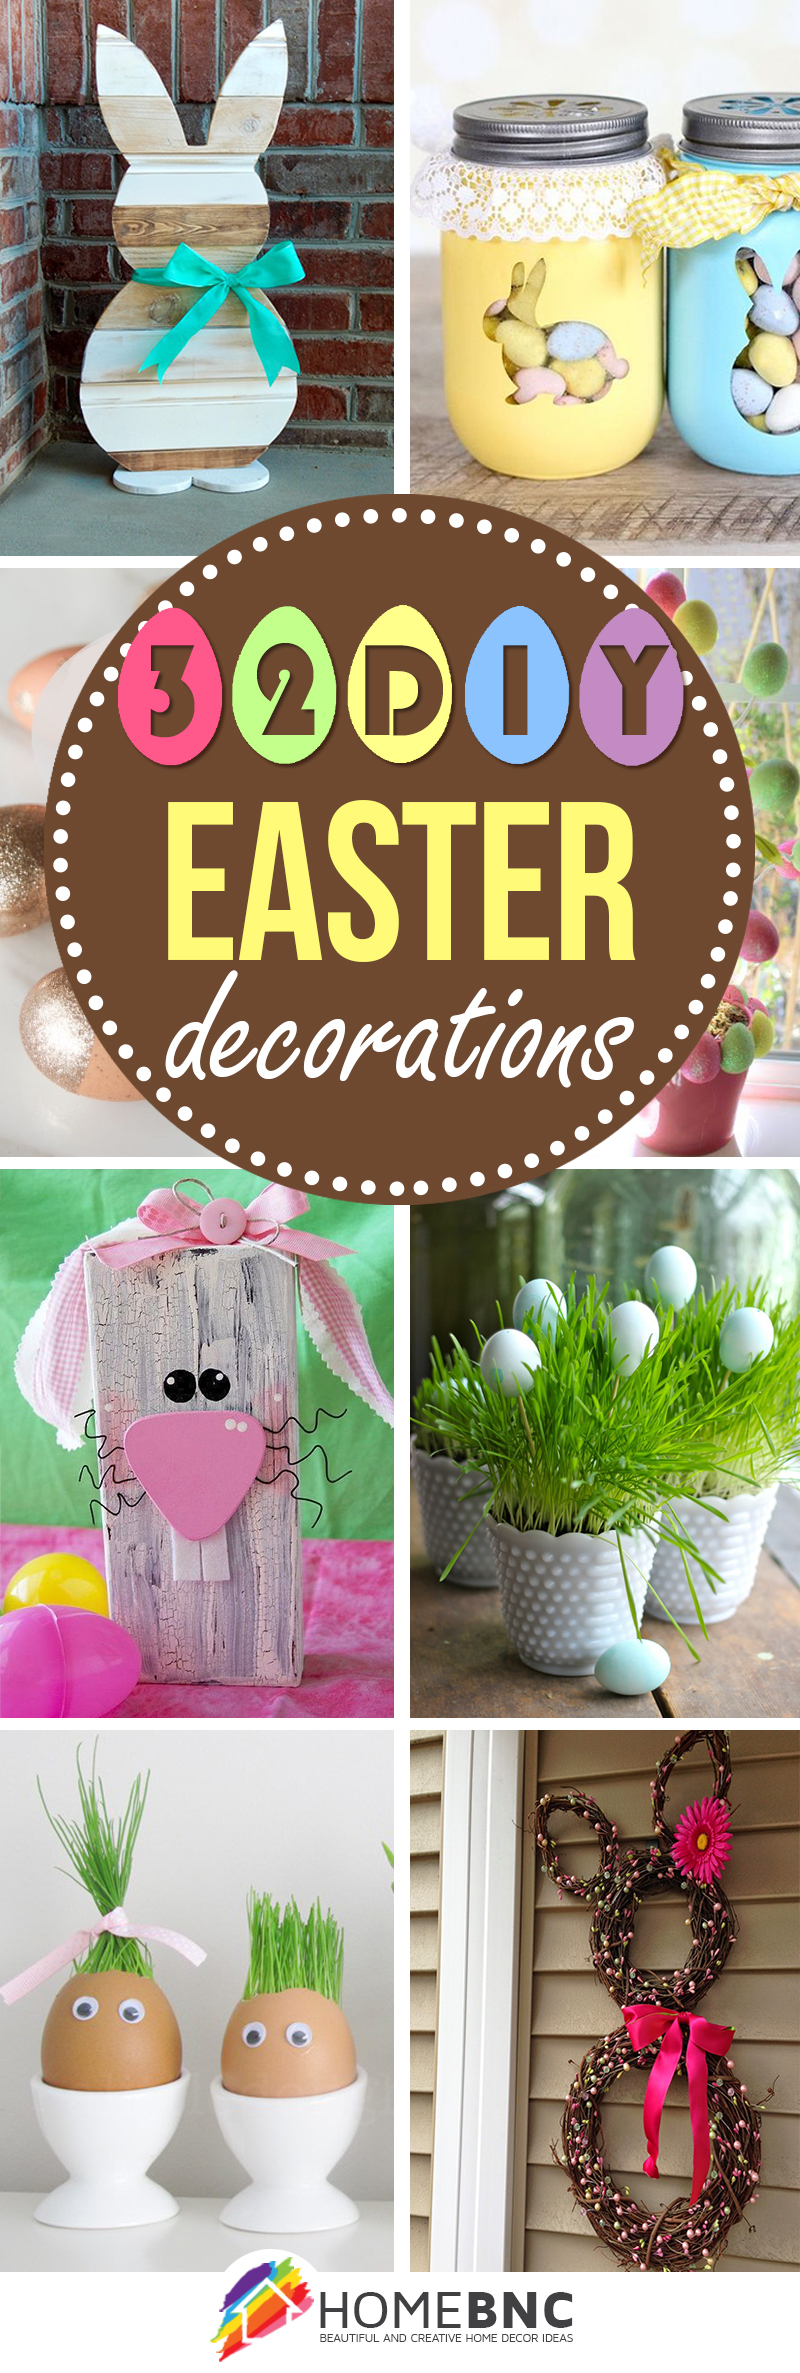 Brighten Your Home DIY Easter Crafts